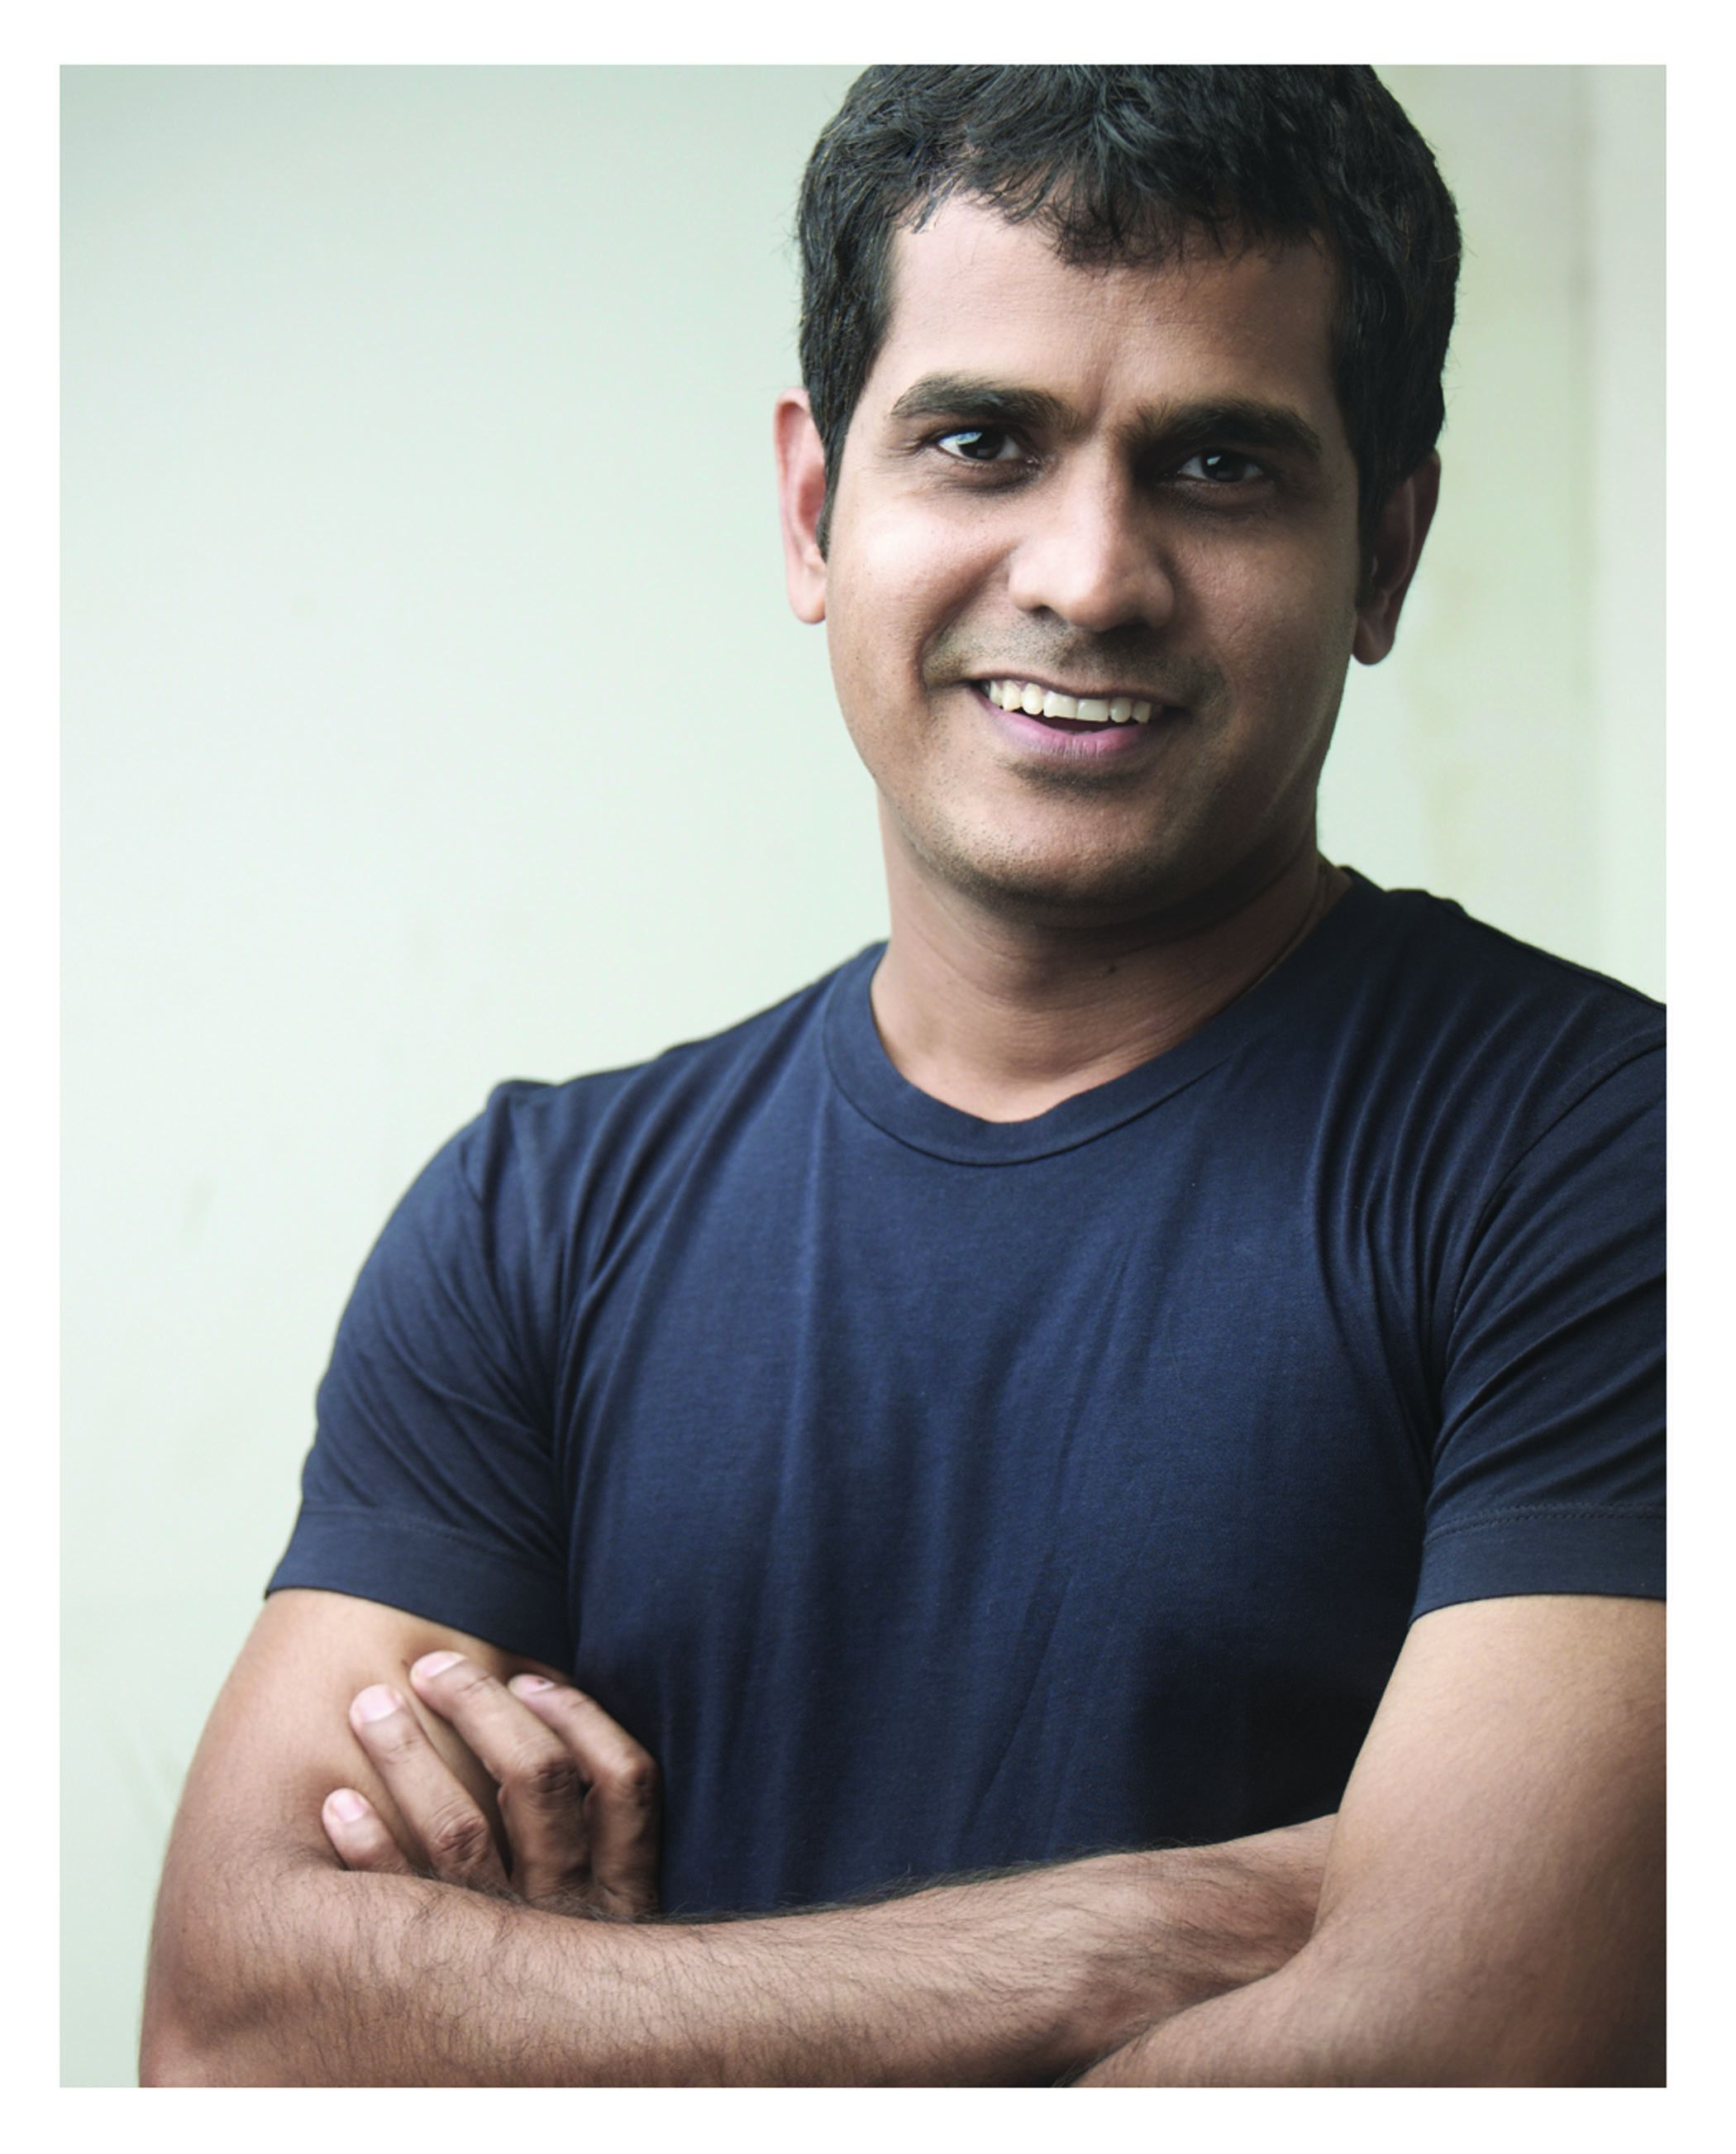 SANTOSH PADHI - Padhi, popularly known as 'Paddy', started his advertising career with DDB before a 10-year stint at Leo Burnett, where he was an Executive Creative Director and the National Head of Art. Together with his business partner and friend Agnello Dias, he started Taproot India in 2008. The agency has since risen to become one of India's most prominent creative agencies, notching up several accolades along the way, including a Gold Clio and the title of #1 Independent Agency from India at Cannes in its very first year. Padhi holds the record for the most number of Cannes Lions (20) by an individual Indian creative from India and has won gold at almost every advertising award show. He has also served as a jury member for numerous national and international award shows including Cannes, Clio, New York Festival, and many others.